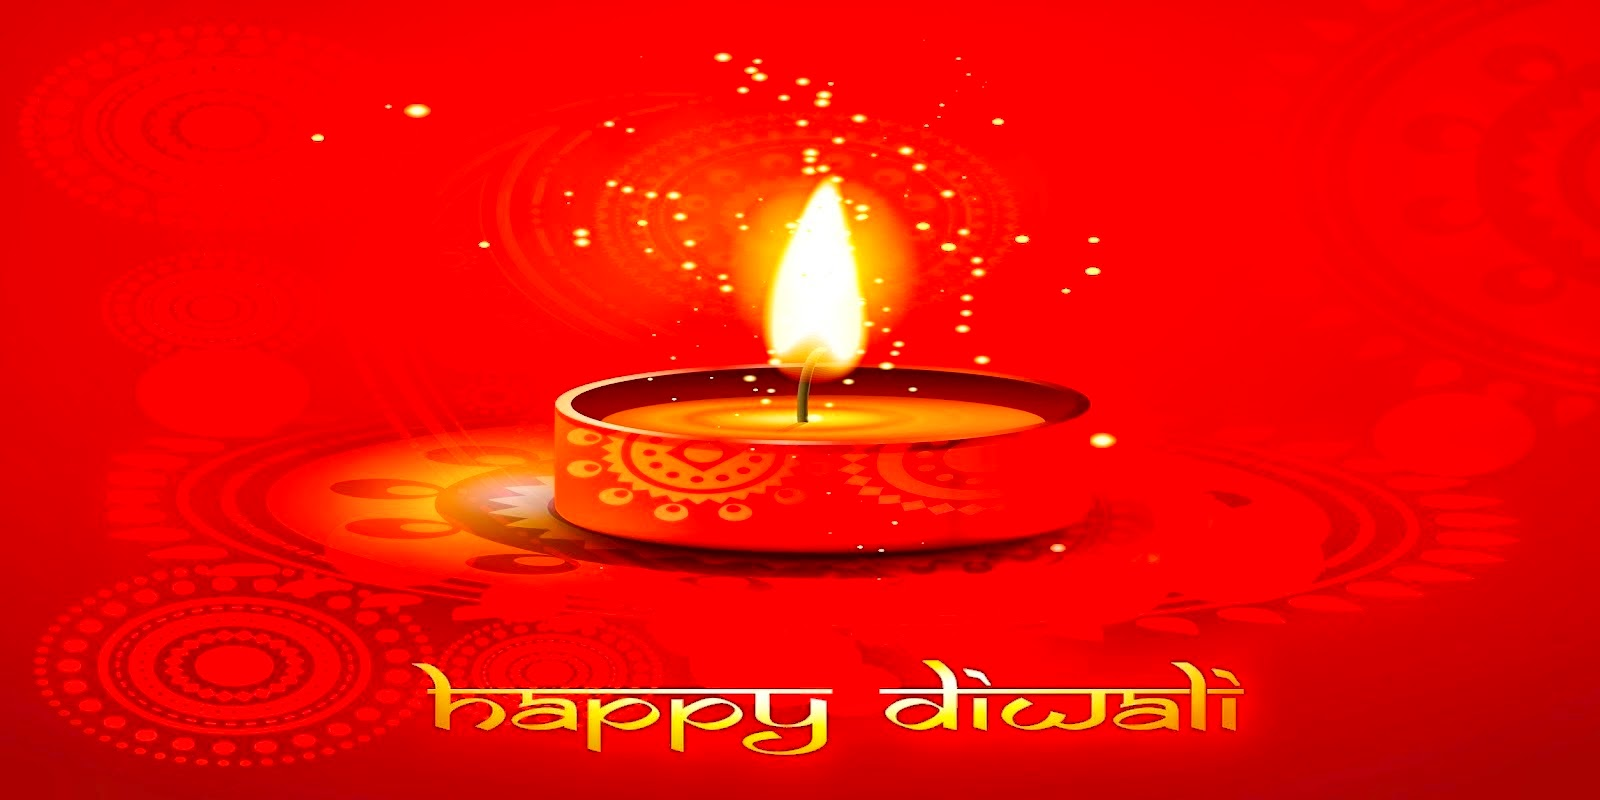 Happy Diwali Wallpapers 2014 for Desktop free